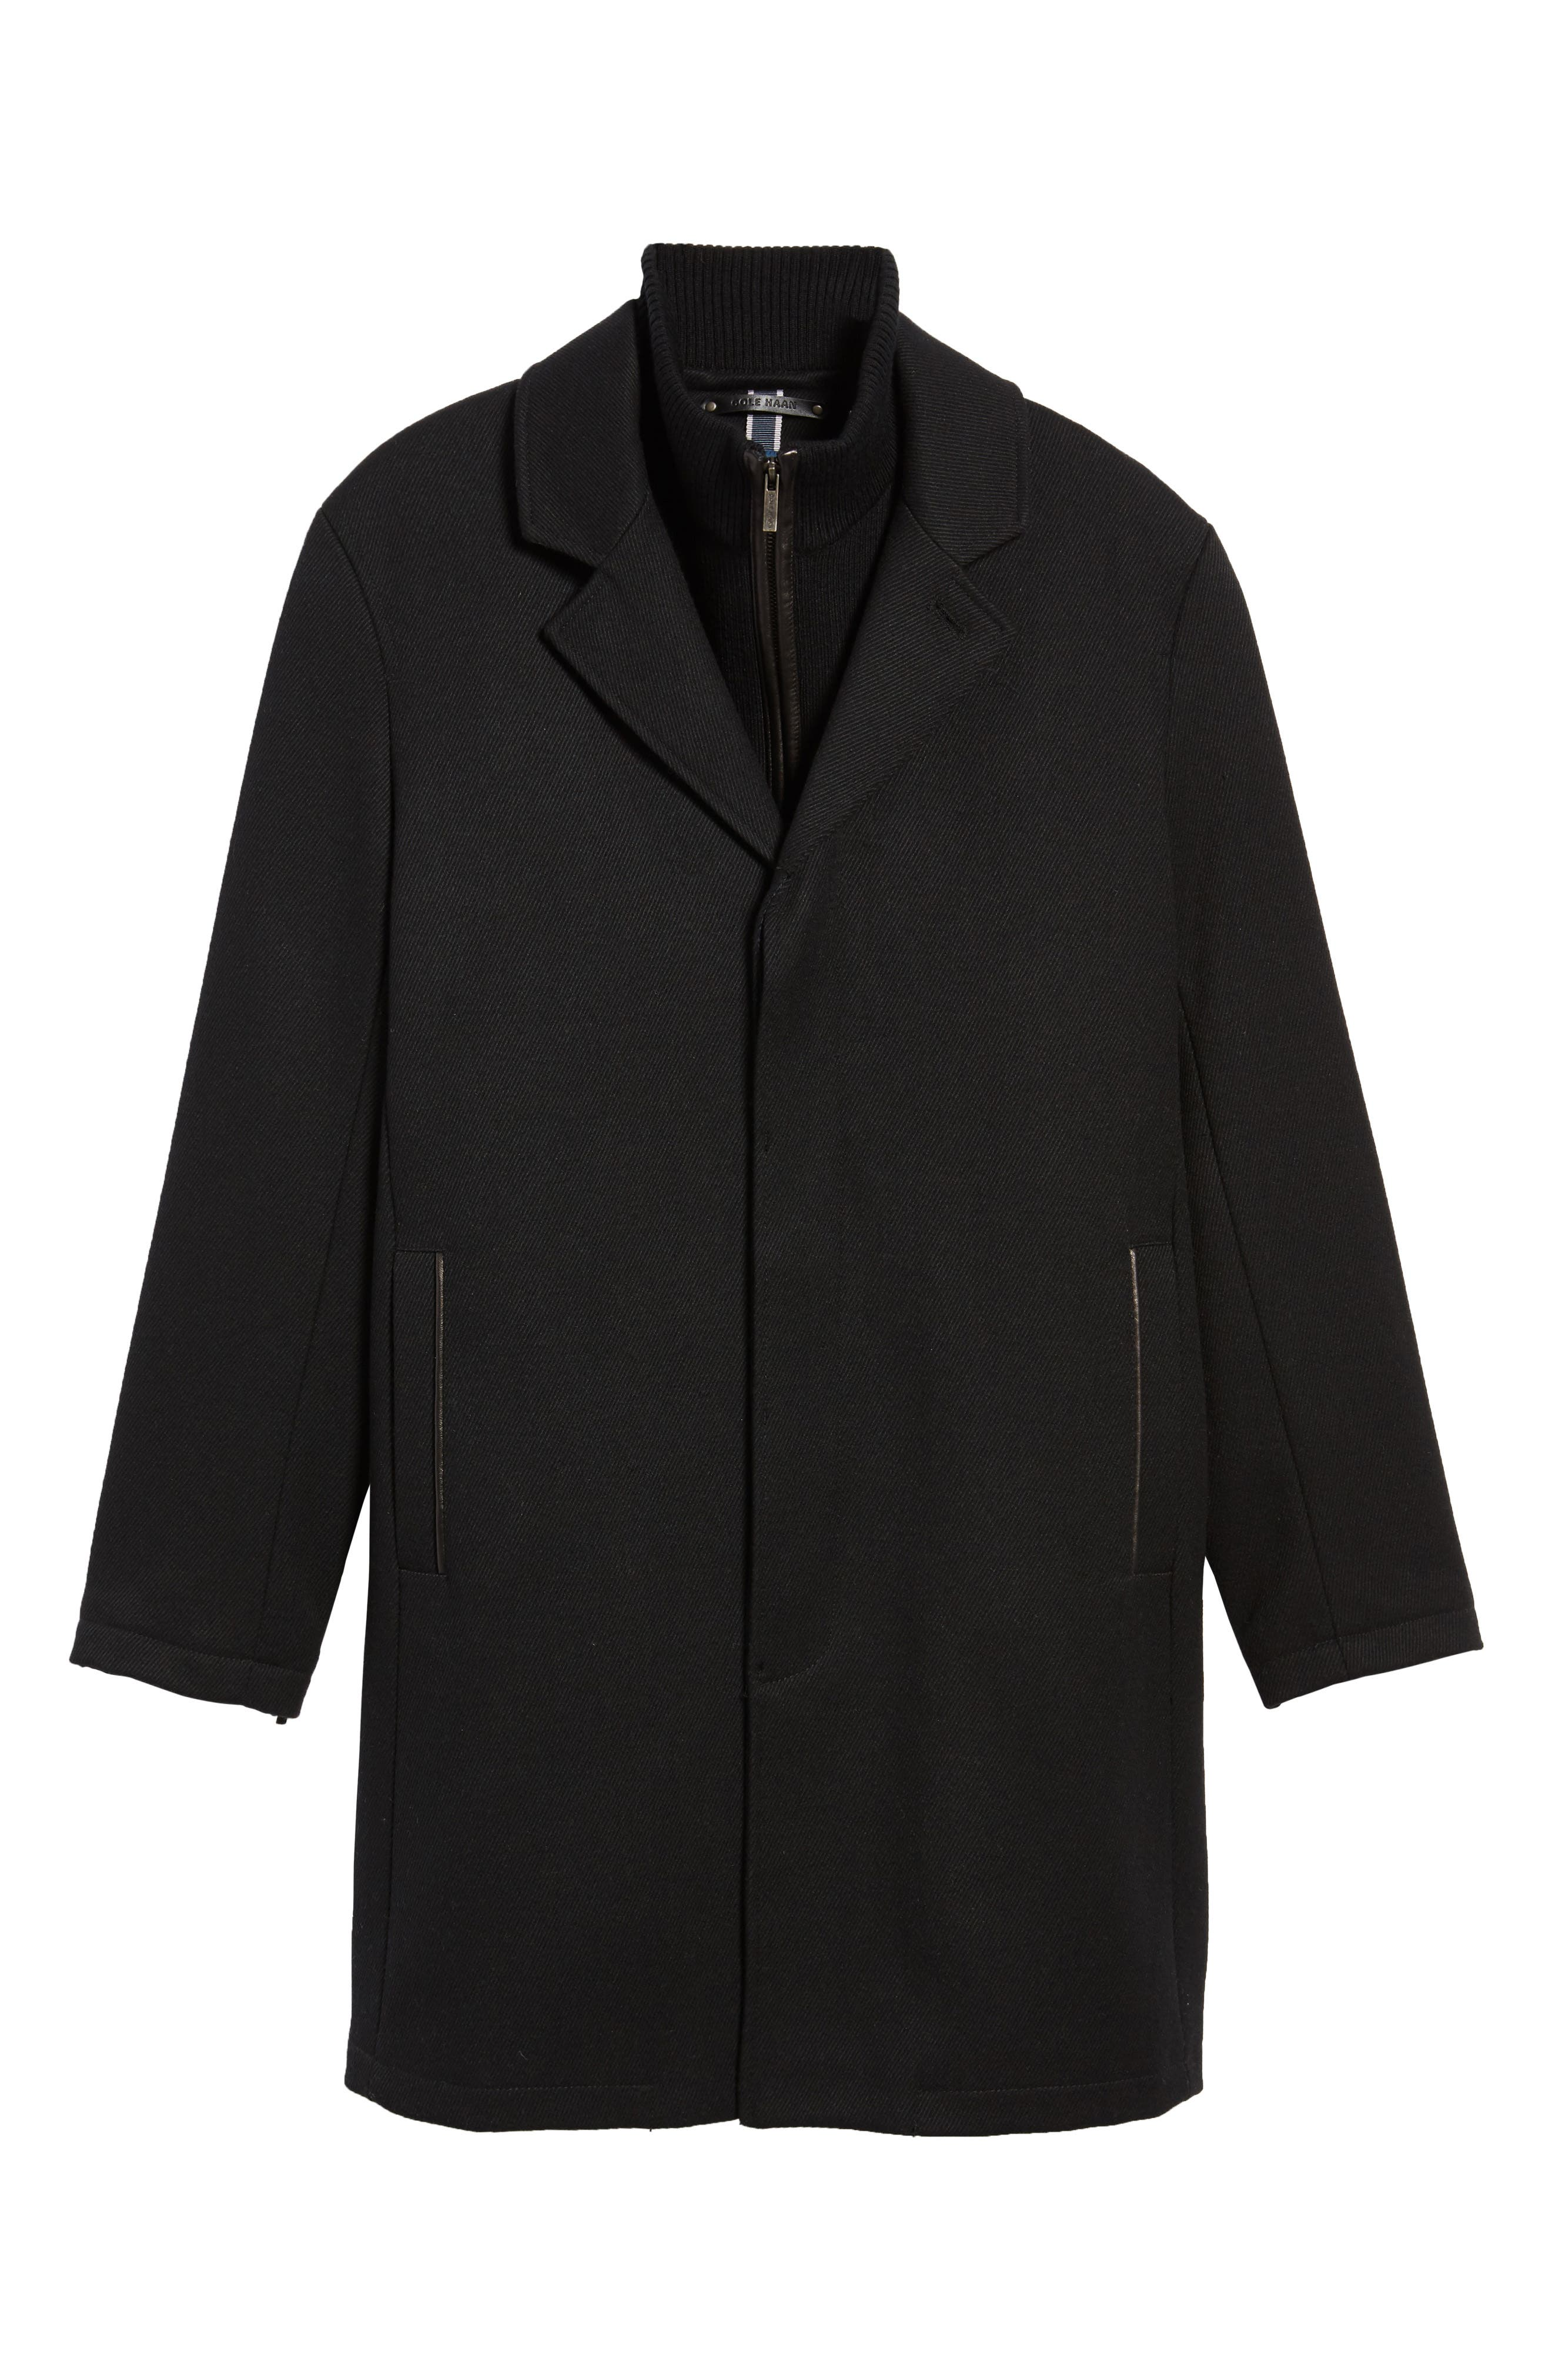 Modern Twill Topcoat with Removable Bib,                             Alternate thumbnail 6, color,                             Black